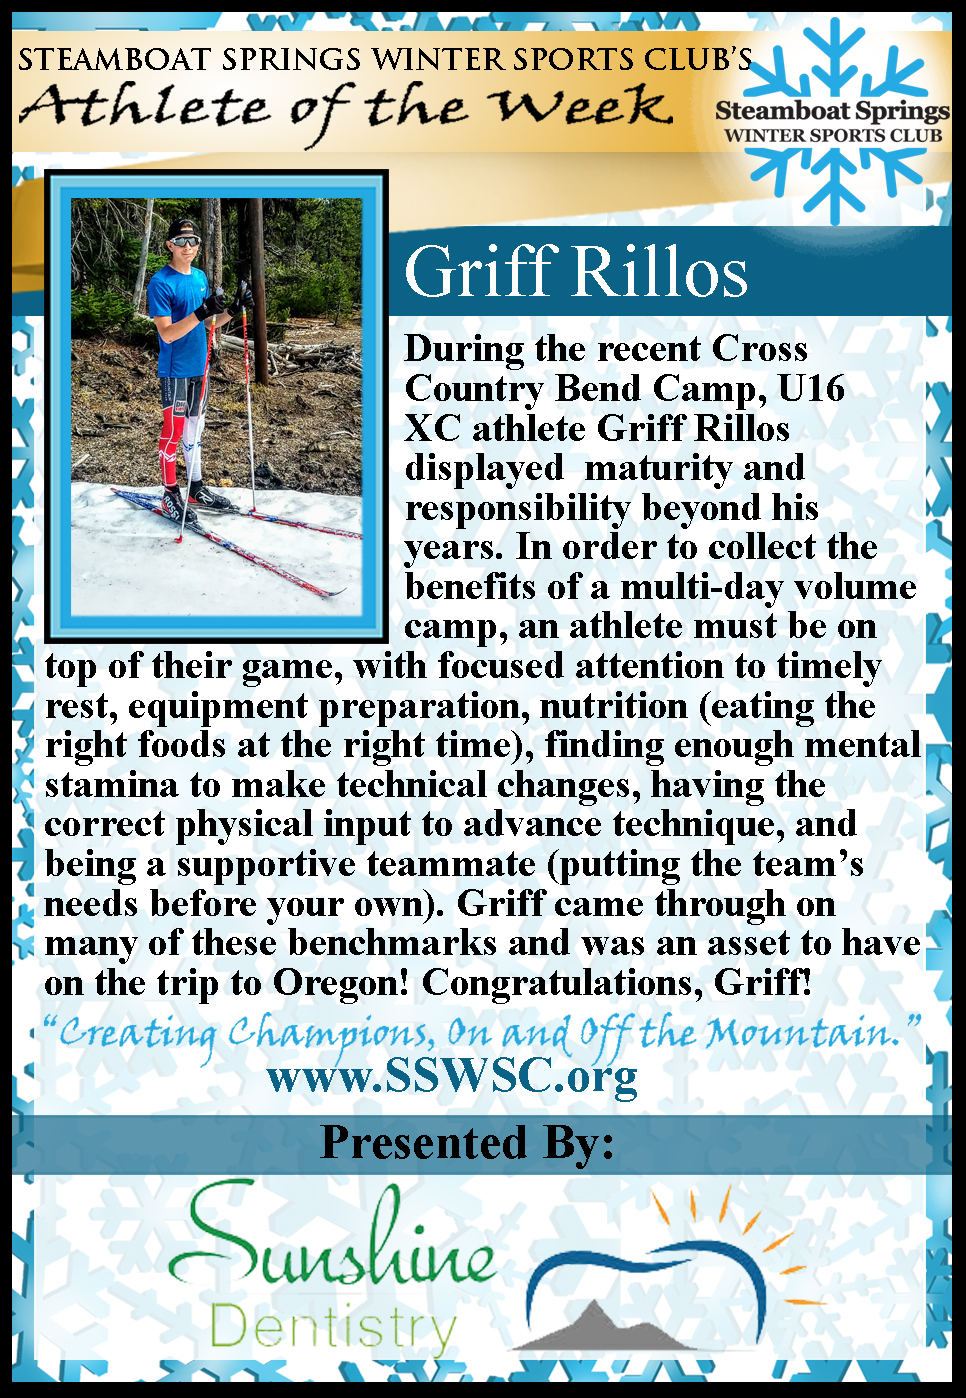 Athlete of the Week, Griff Rillos